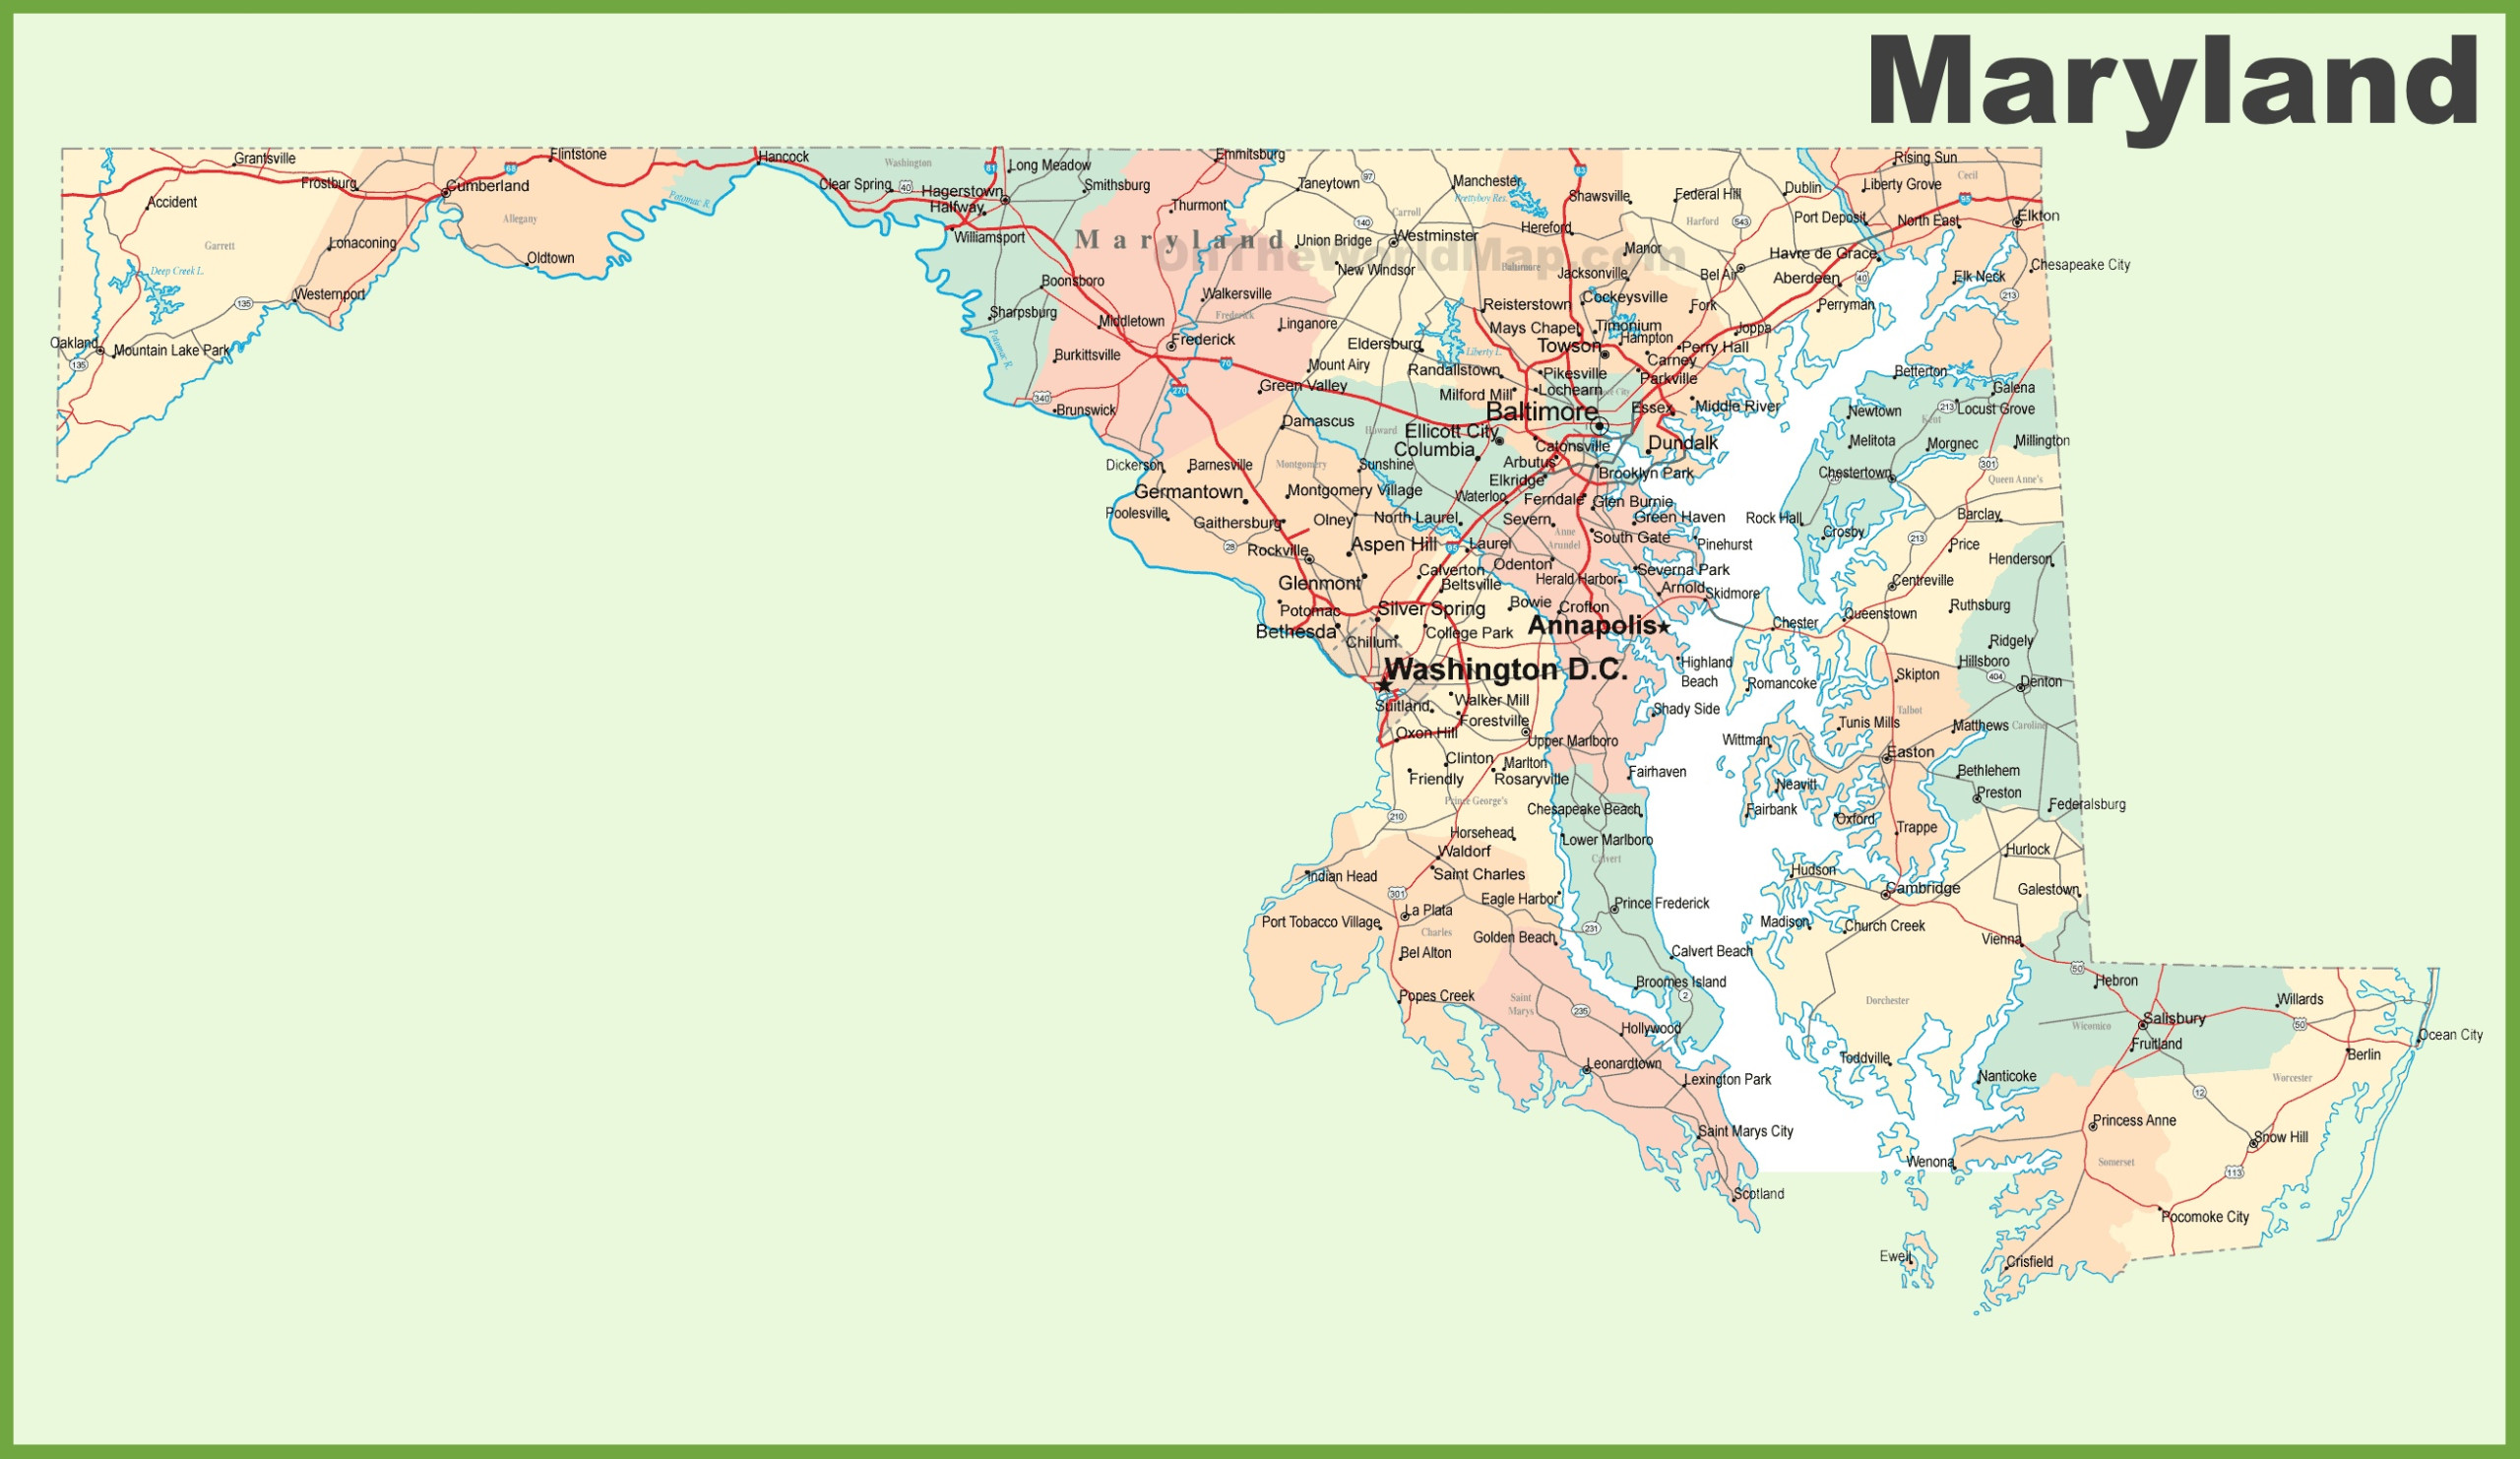 Road Map Of Maryland With Cities